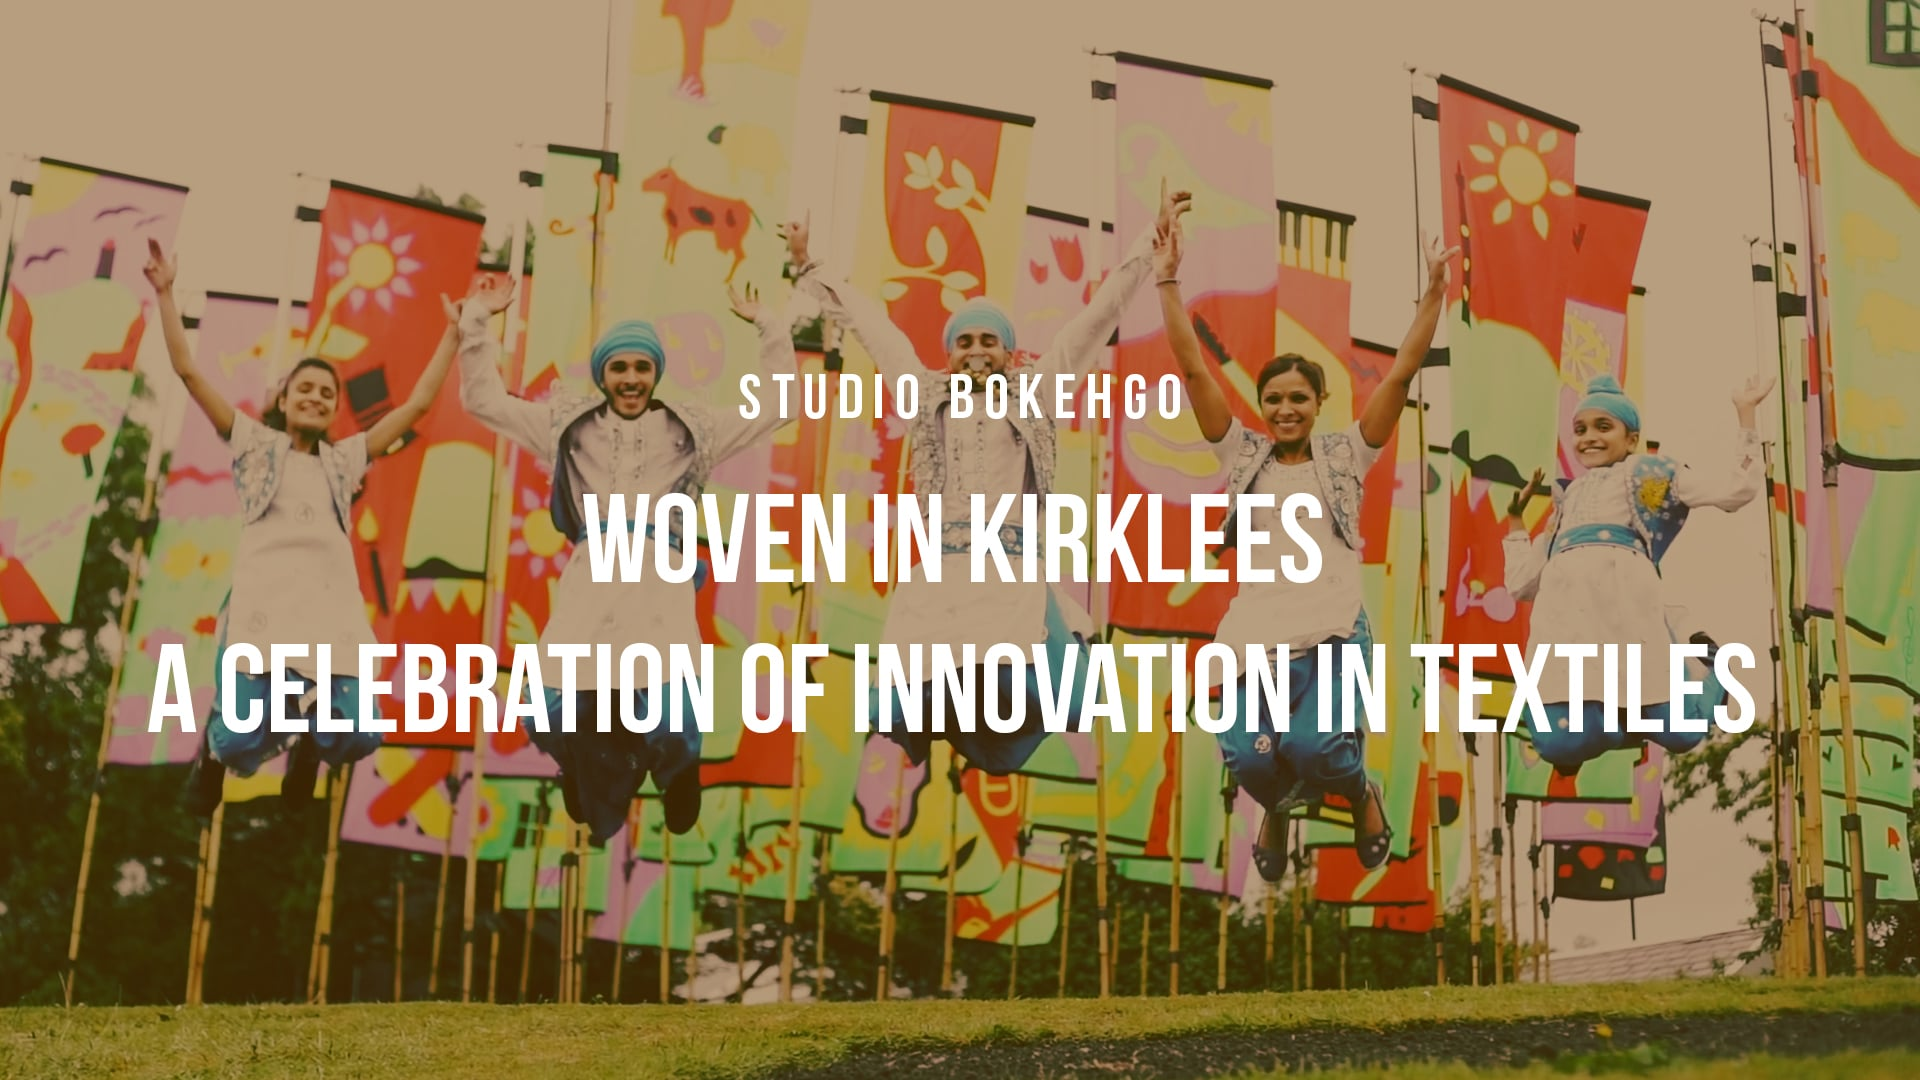 Woven in Kirklees - A Celebration of Innovation in Textiles